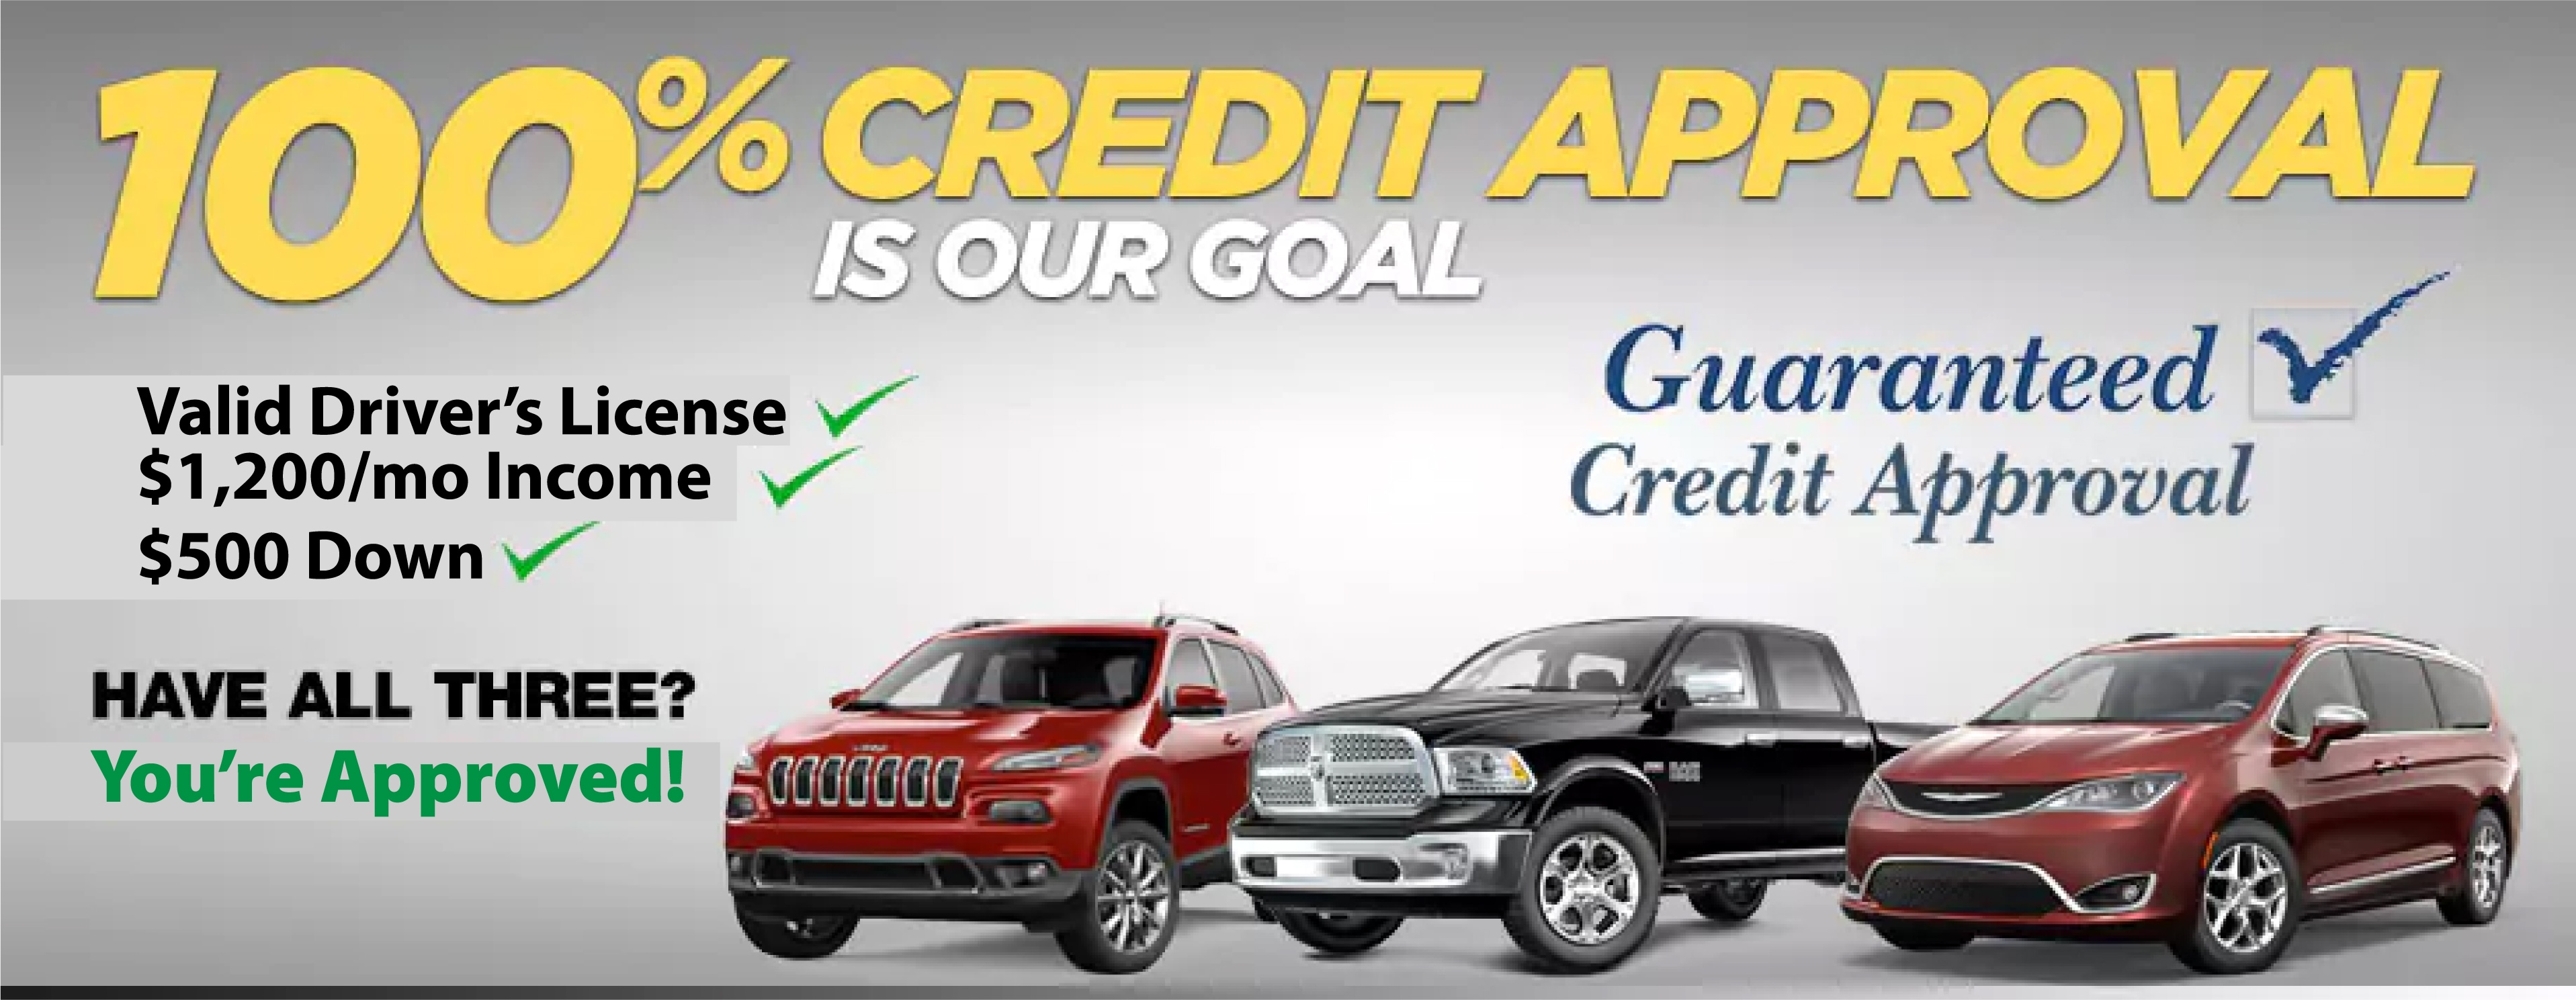 Bad Credit Car Dealerships Near Me >> Easy Bad Credit Car Loans Dayton Oh